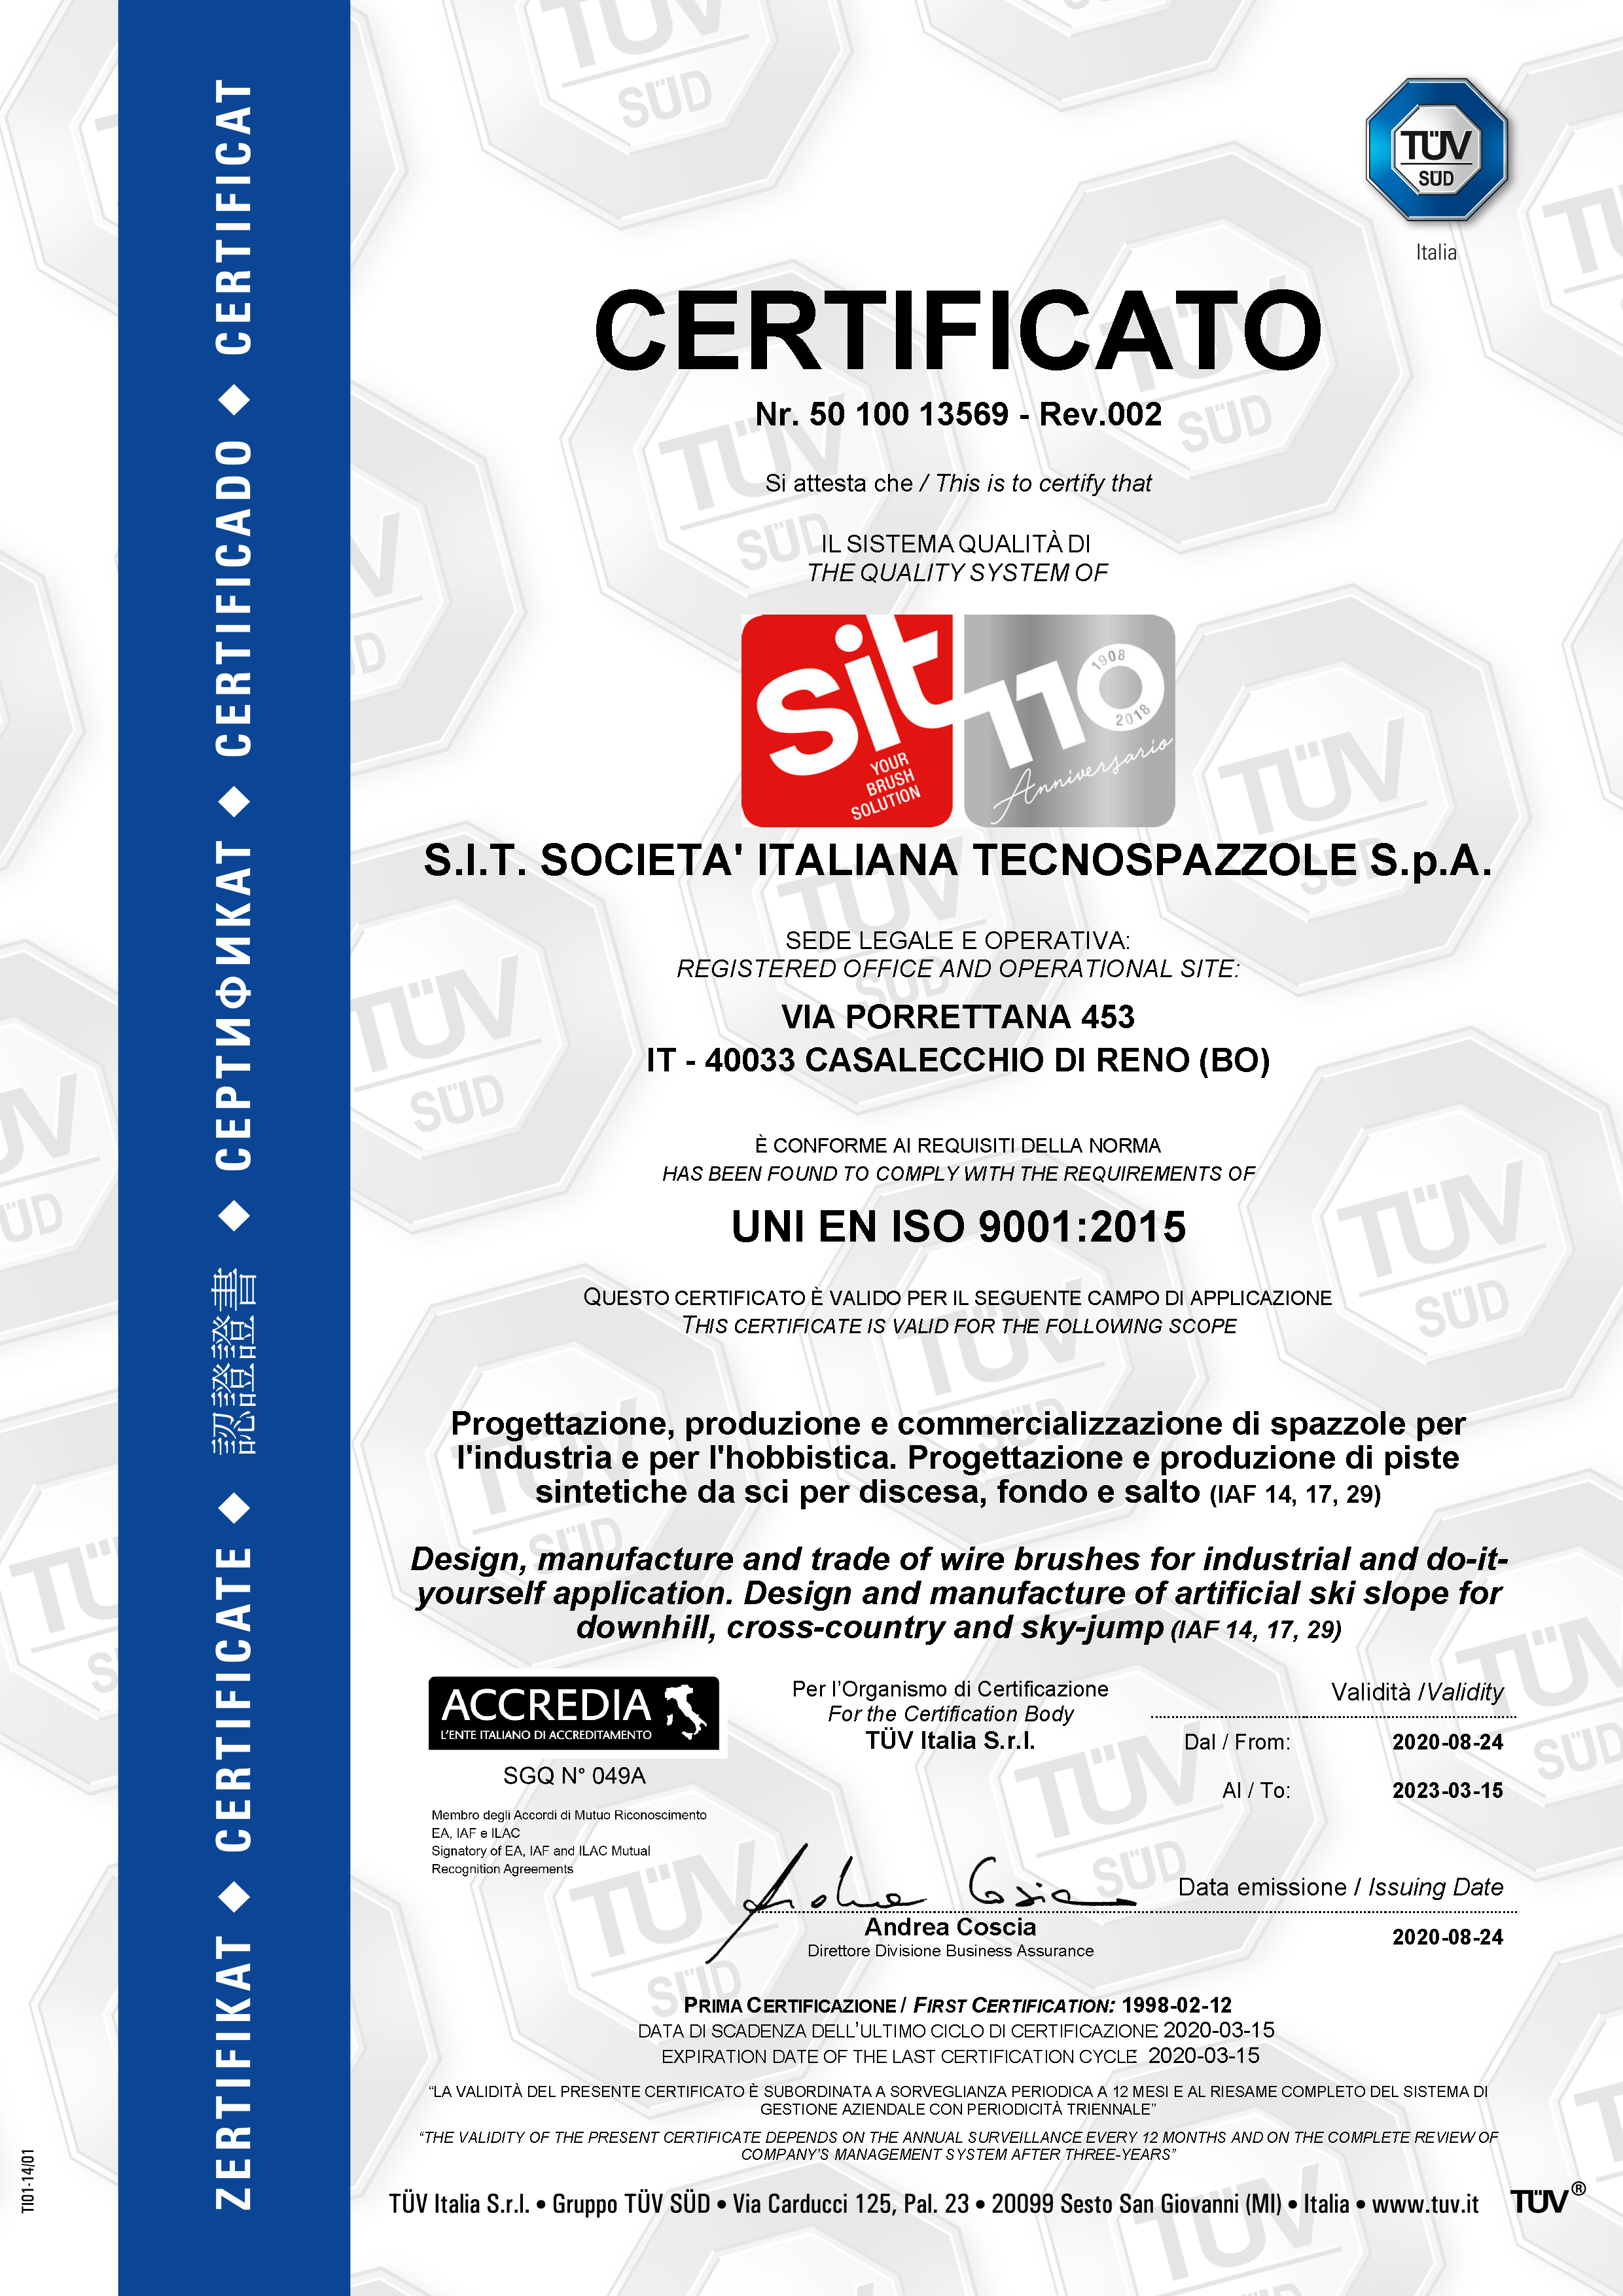 Quality System Certificate ISO 9001:2015 for SIT Tecnospazzole by TUV